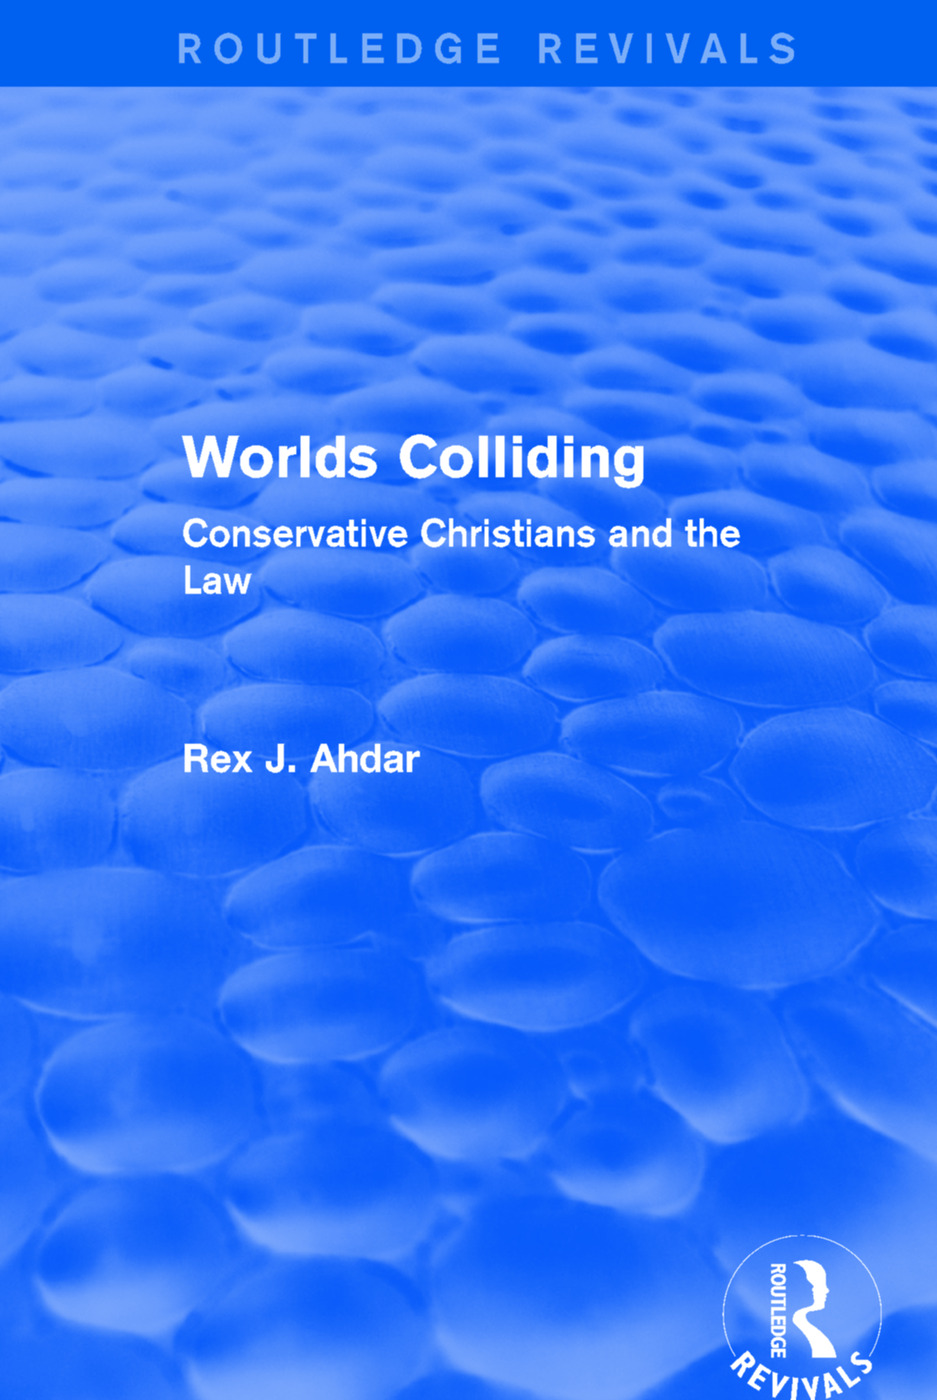 Revival: Worlds Colliding (2001): Conservative Christians and the Law book cover